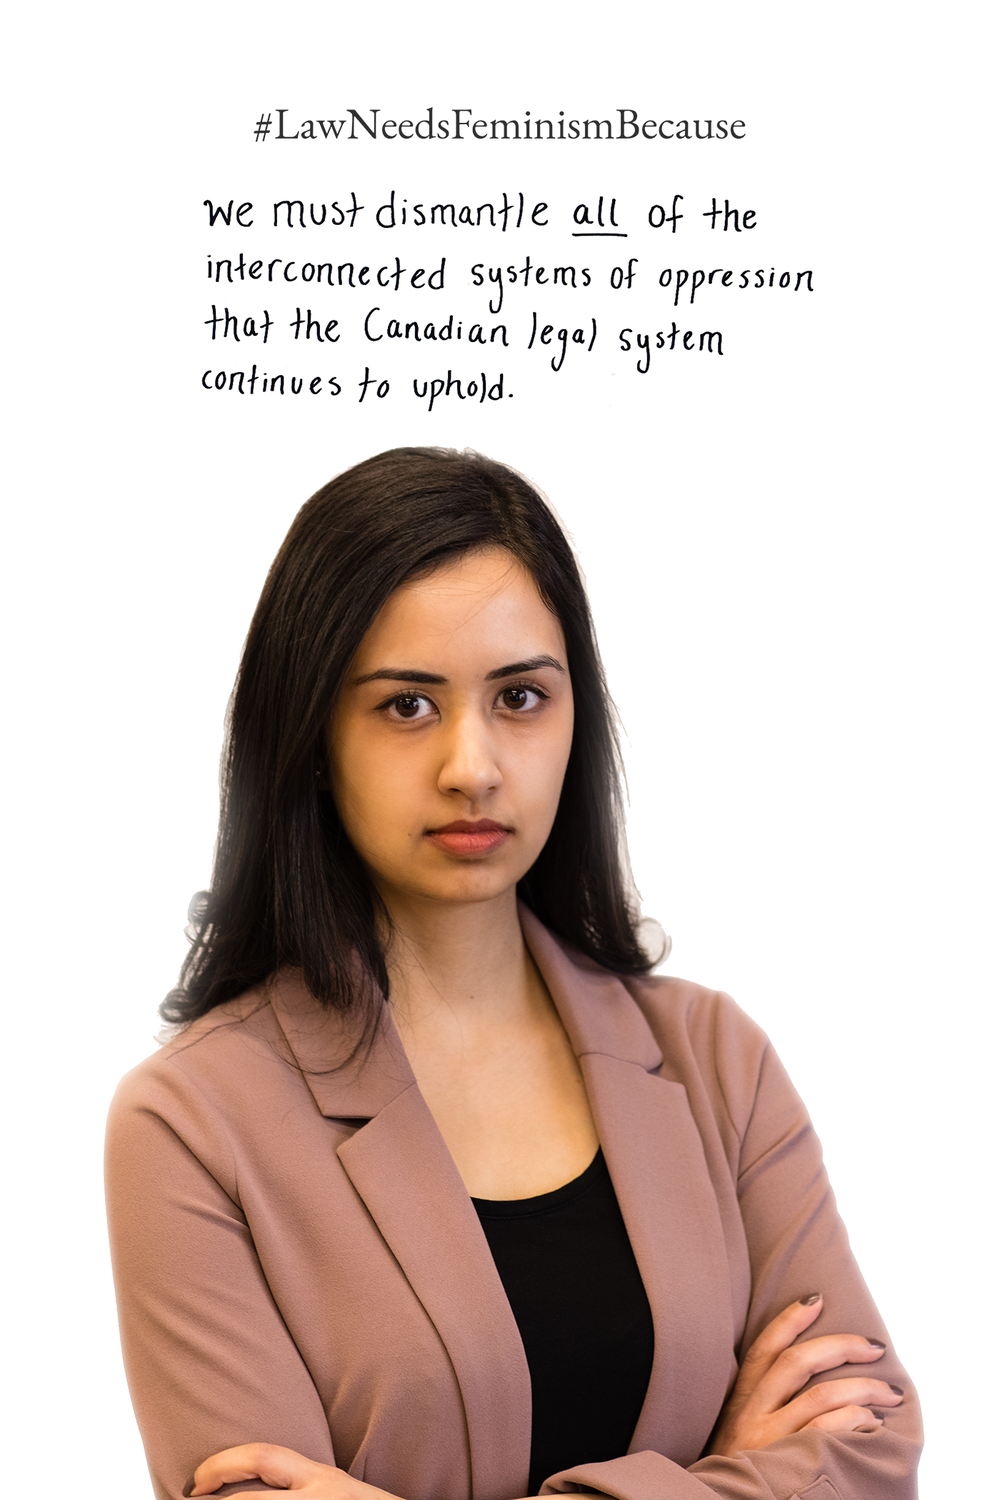 Law Needs Feminism Because  we must dismantle all of the interconnected systems of oppression that the Canadian legal system continues to uphold.